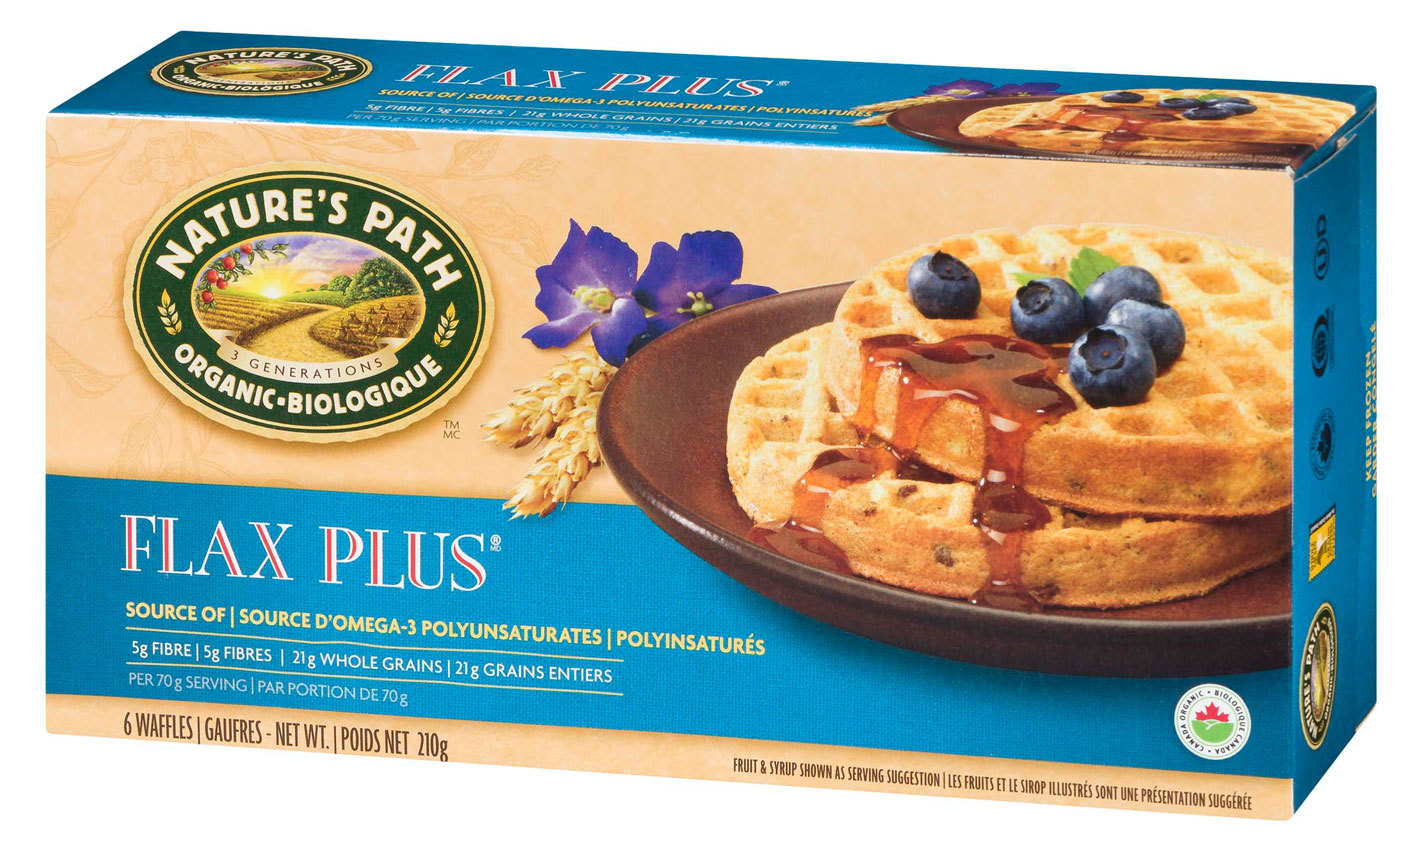 natures path brand flax plus waffles